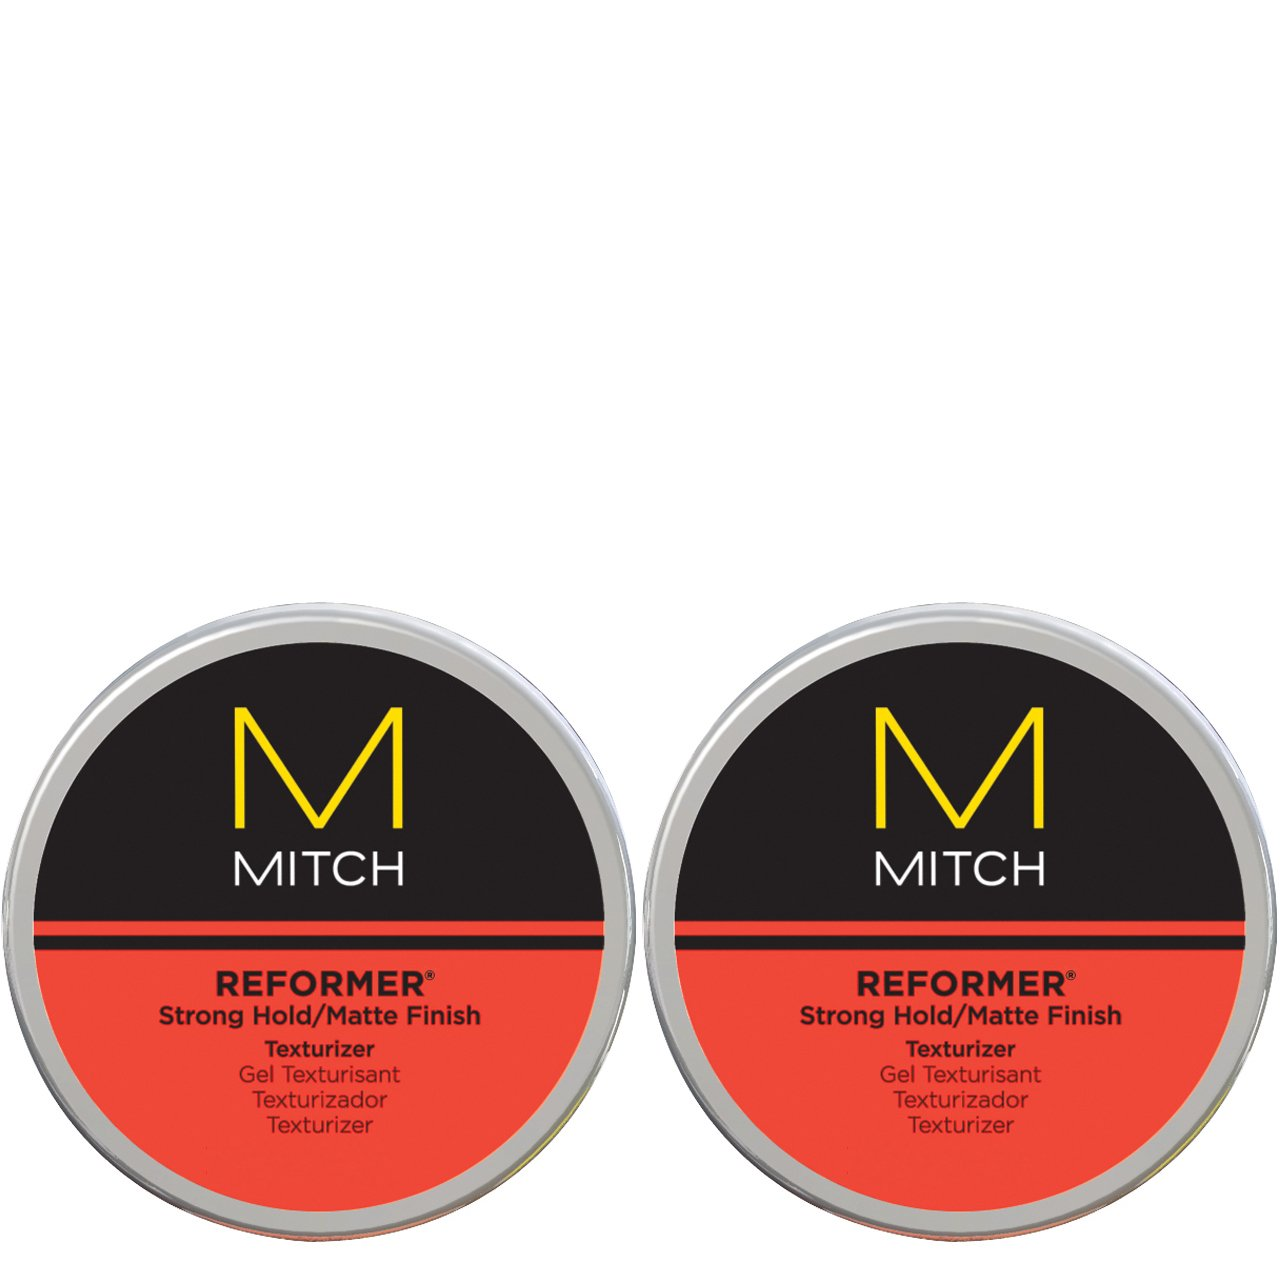 PAUL MITCHELL MEN by Paul Mitchel MITCH REFORMER STRONG HOLD/MATTE FINISH TEXTURIZER 3 OZ ( Package Of 2 ) by PAUL MITCHELL MEN